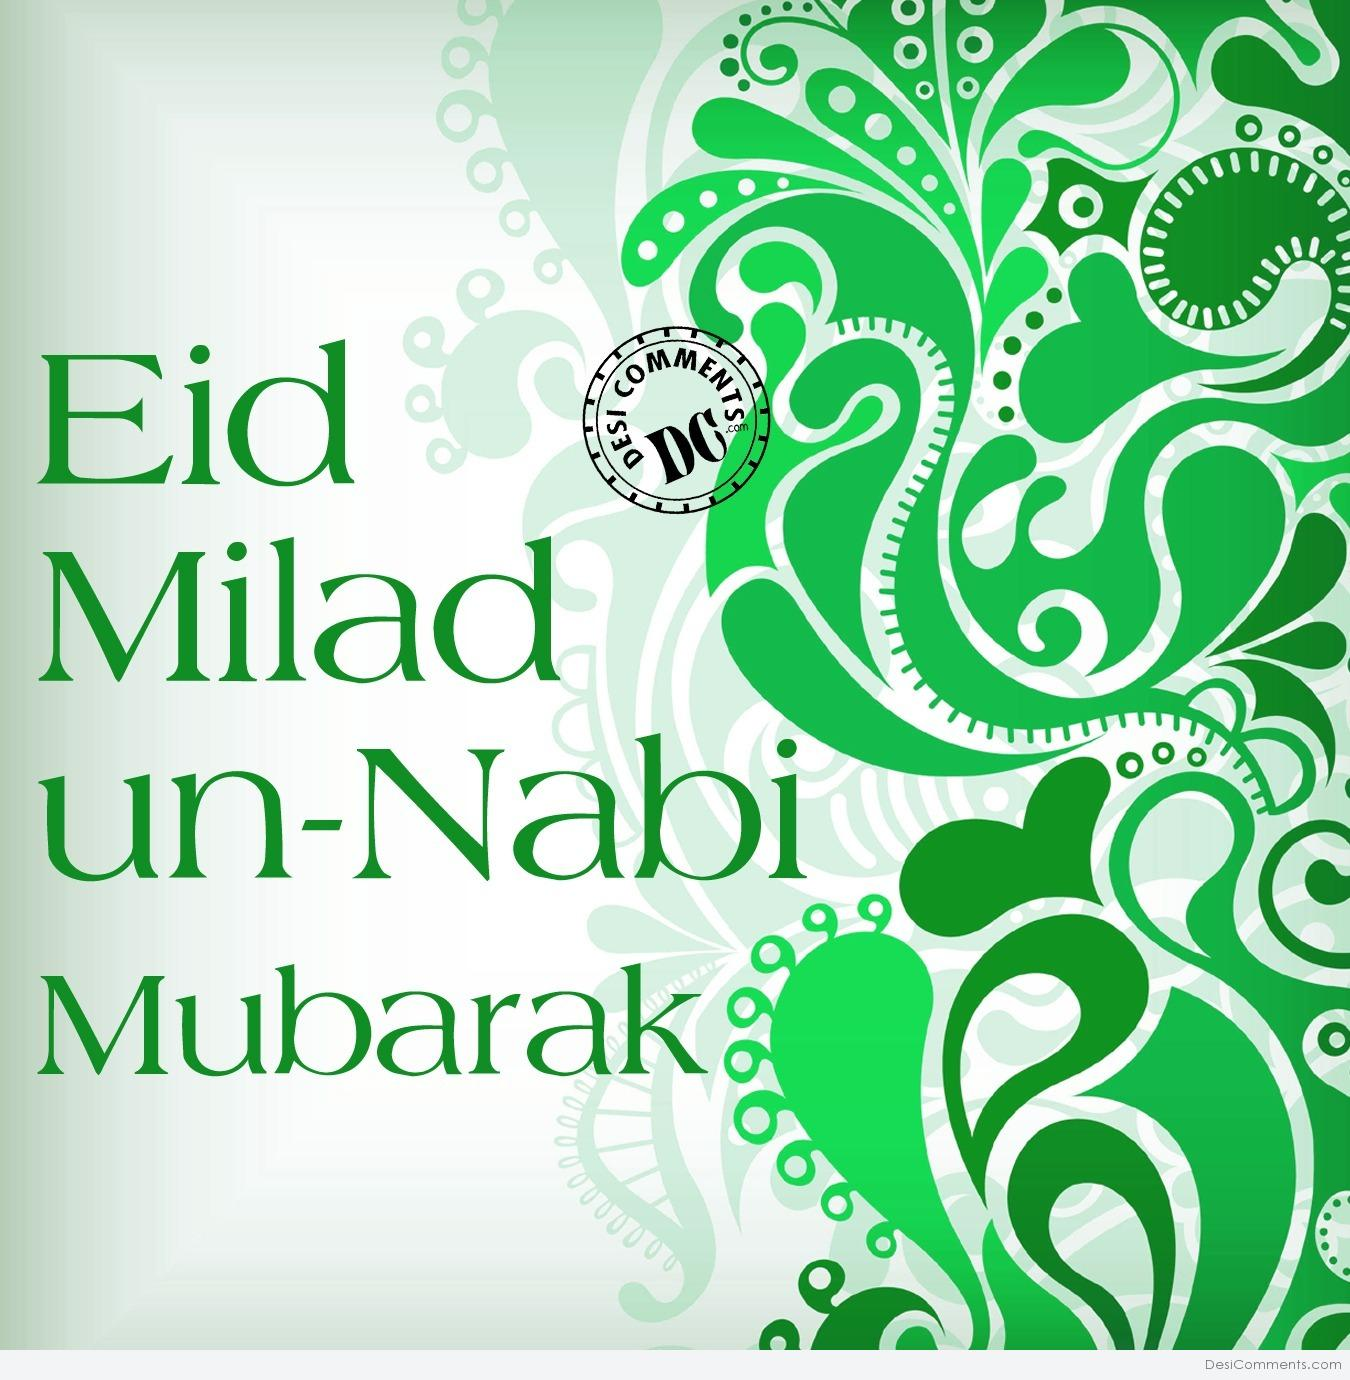 essay celebrations eid milad un nabi Celebrations by shia muslims eid-e-milad or eid-e-milad-un-nabi - this name is used to mark the prophet's birth and death anniversary.